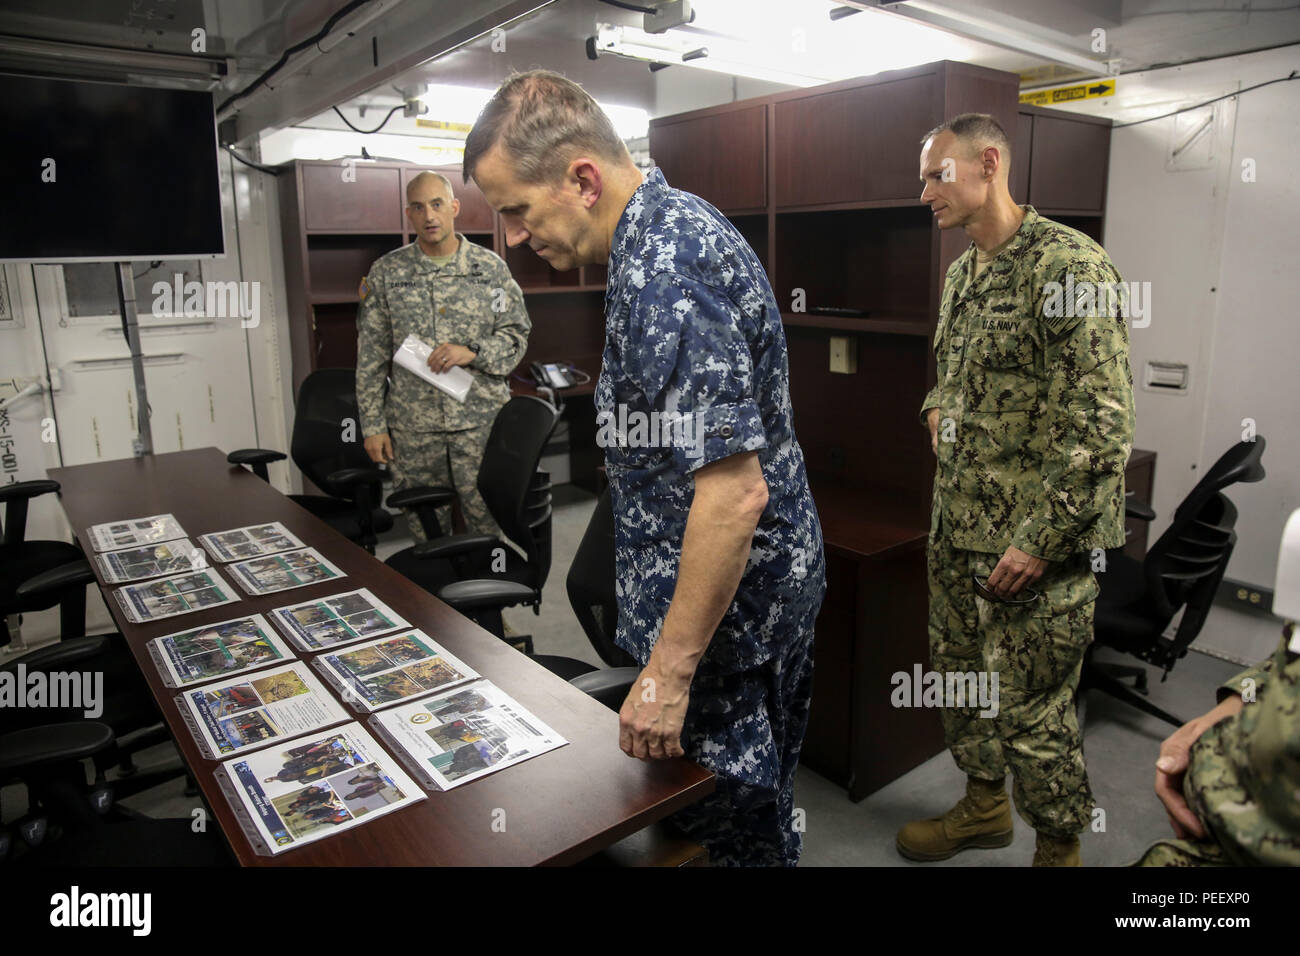 150813-M-GO800-121 SAN FERNANDO CITY, Philippines (August 13, 2015) – Commander, Task Force 73, Rear Adm. Charles Williams, examines the work done by the Task Force Forager medical team aboard the Military Sealift Command joint high speed vessel USNS Millinocket (JHSV 3) August 13. Task Force Forager will be in the Philippines until Aug. 15 providing medical and engineering assistance. Task Force Forager, embarked aboard the Military Sealift Command joint high speed vessel USNS Millinocket (JHSV 3) is serving as the secondary platform for Pacific Partnership, led by an expeditionary command el - Stock Image